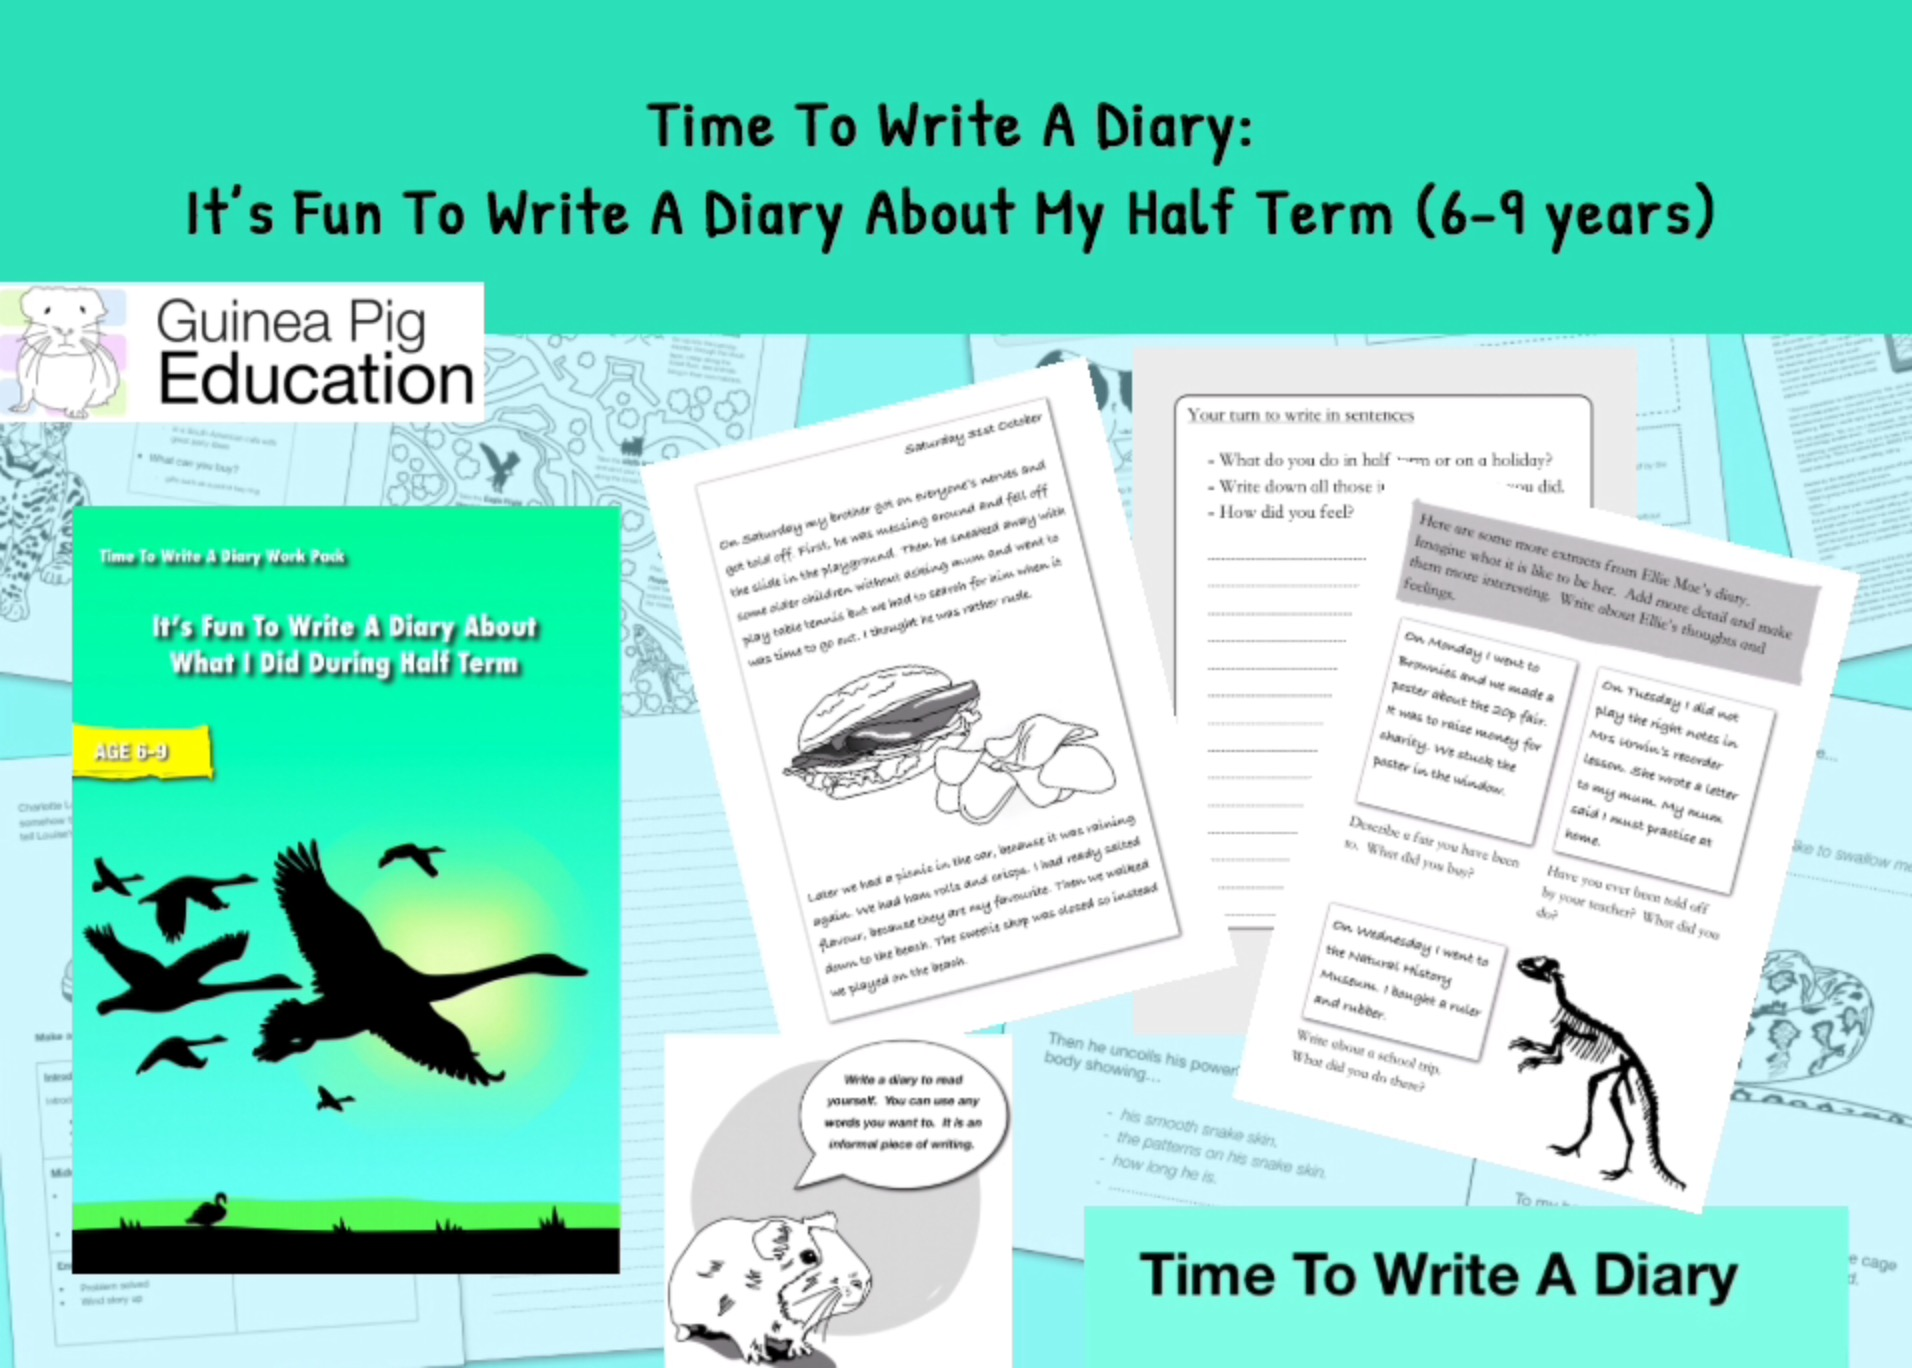 It's Fun To Write A Diary About What I Did During The School Holidays (6-9 years)